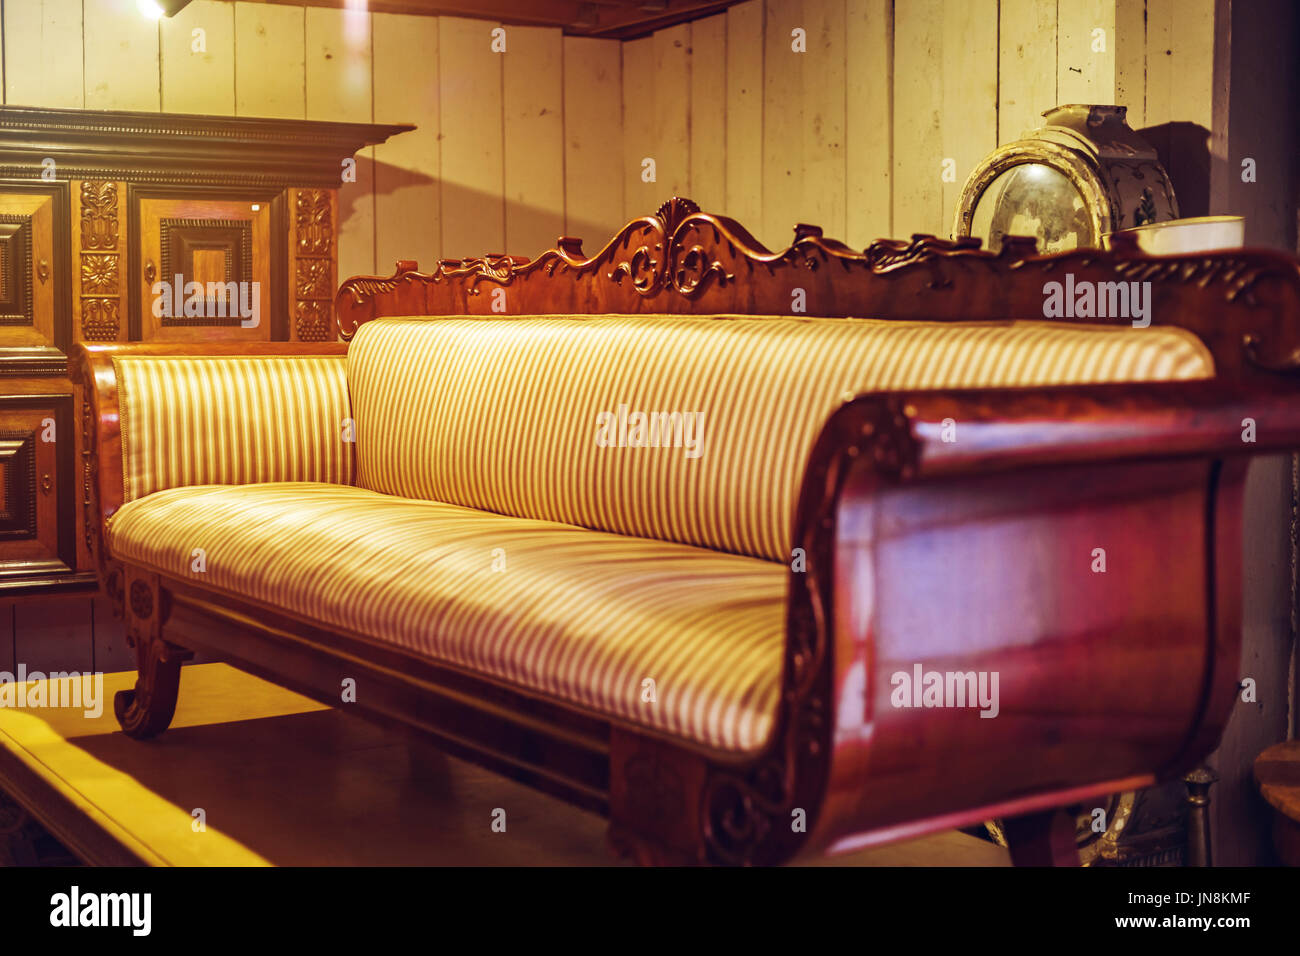 Old vintage furniture in antique shop, Bruxelles, Belgium Stock Photo - Alamy